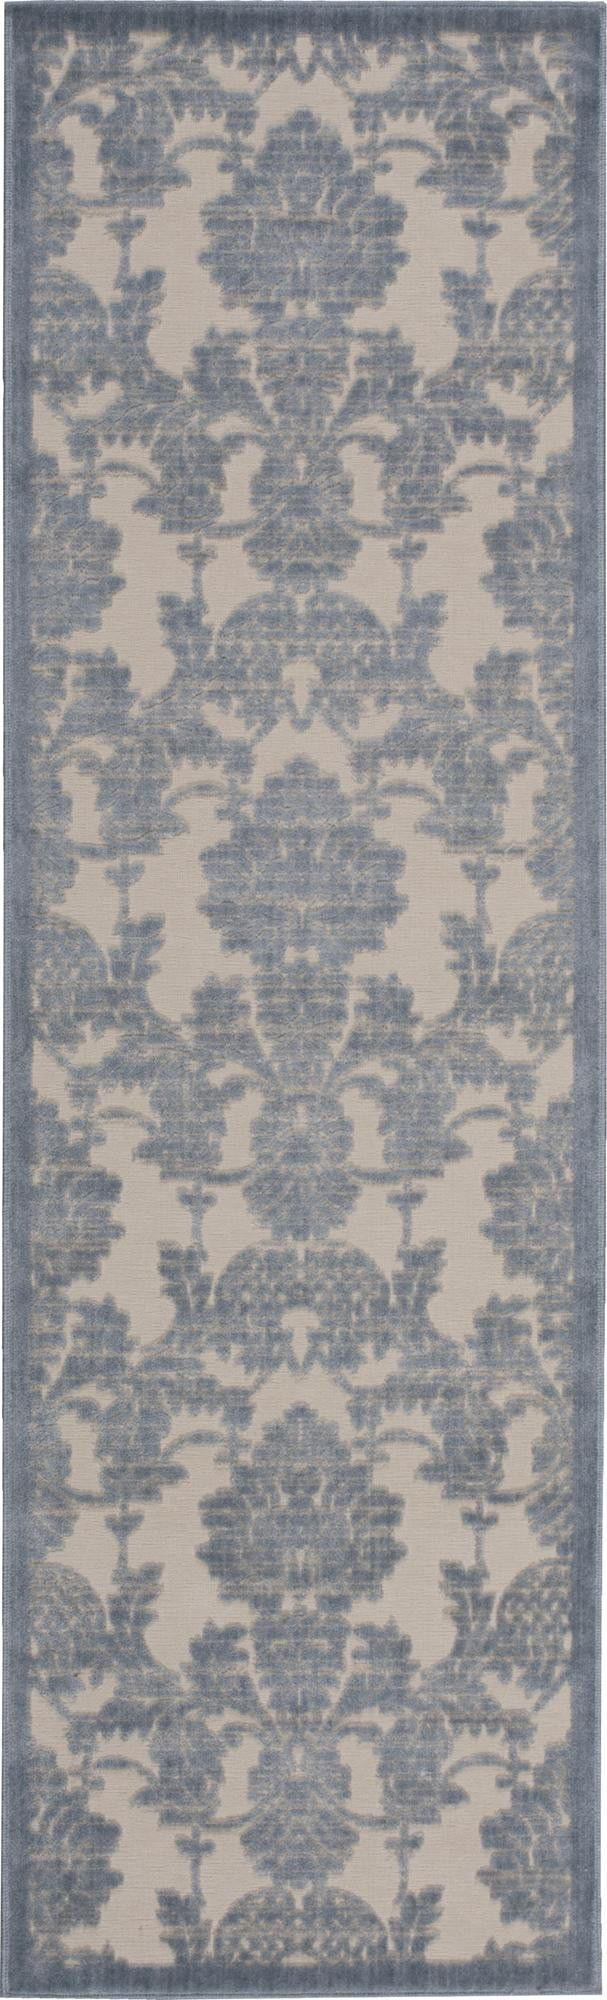 nourison graphic illusions ivorylight blue area rug gil03 ivltb runner